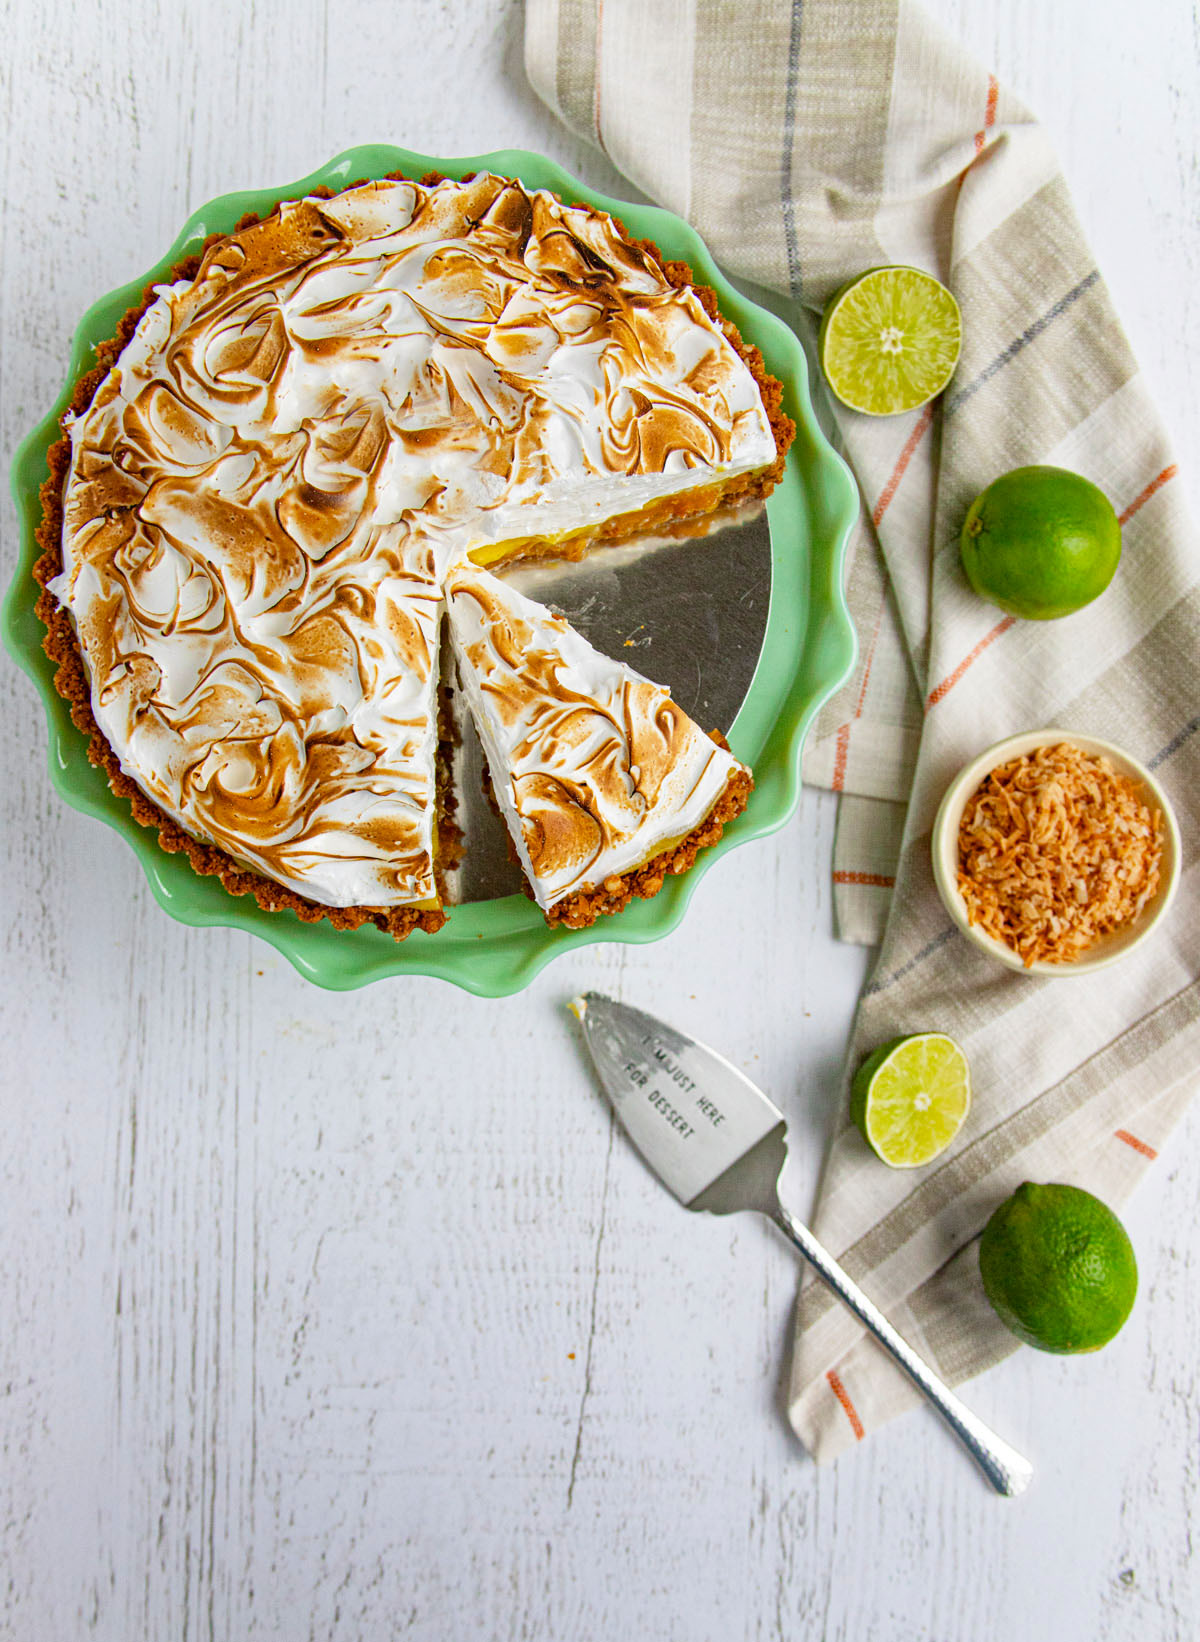 Roasted Pineapple and Lime Curd Tart on a green cake stand with limes in the background